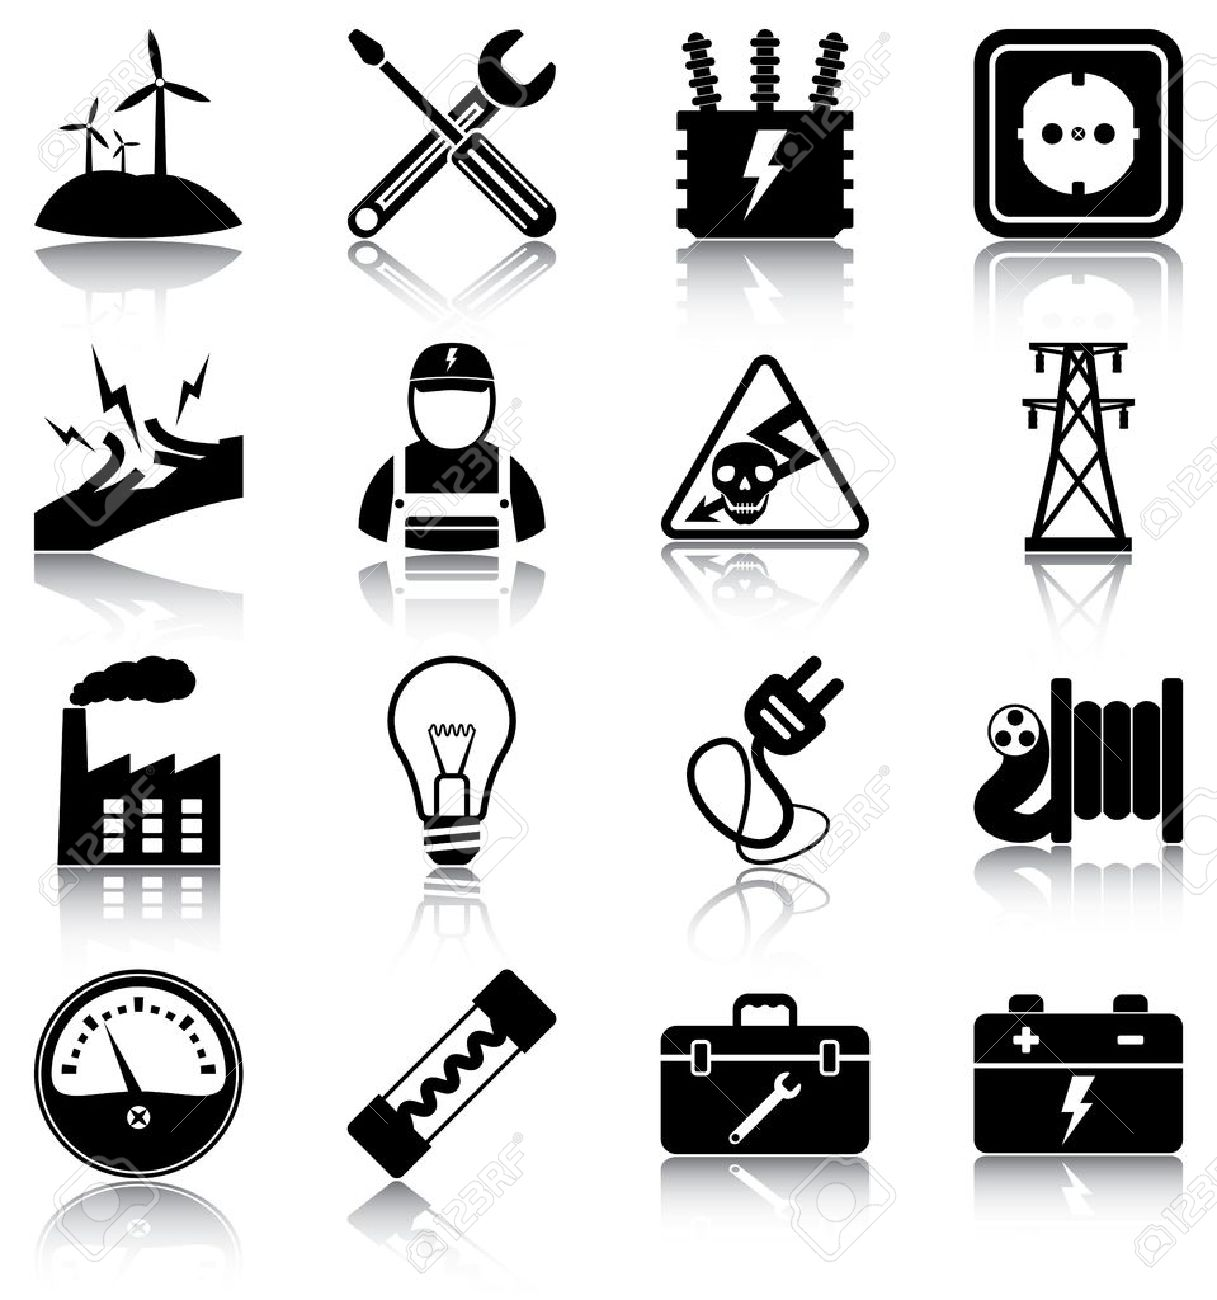 16 Electricity Related Icons Silhouettes Royalty Free Cliparts – Icons Fuse Box